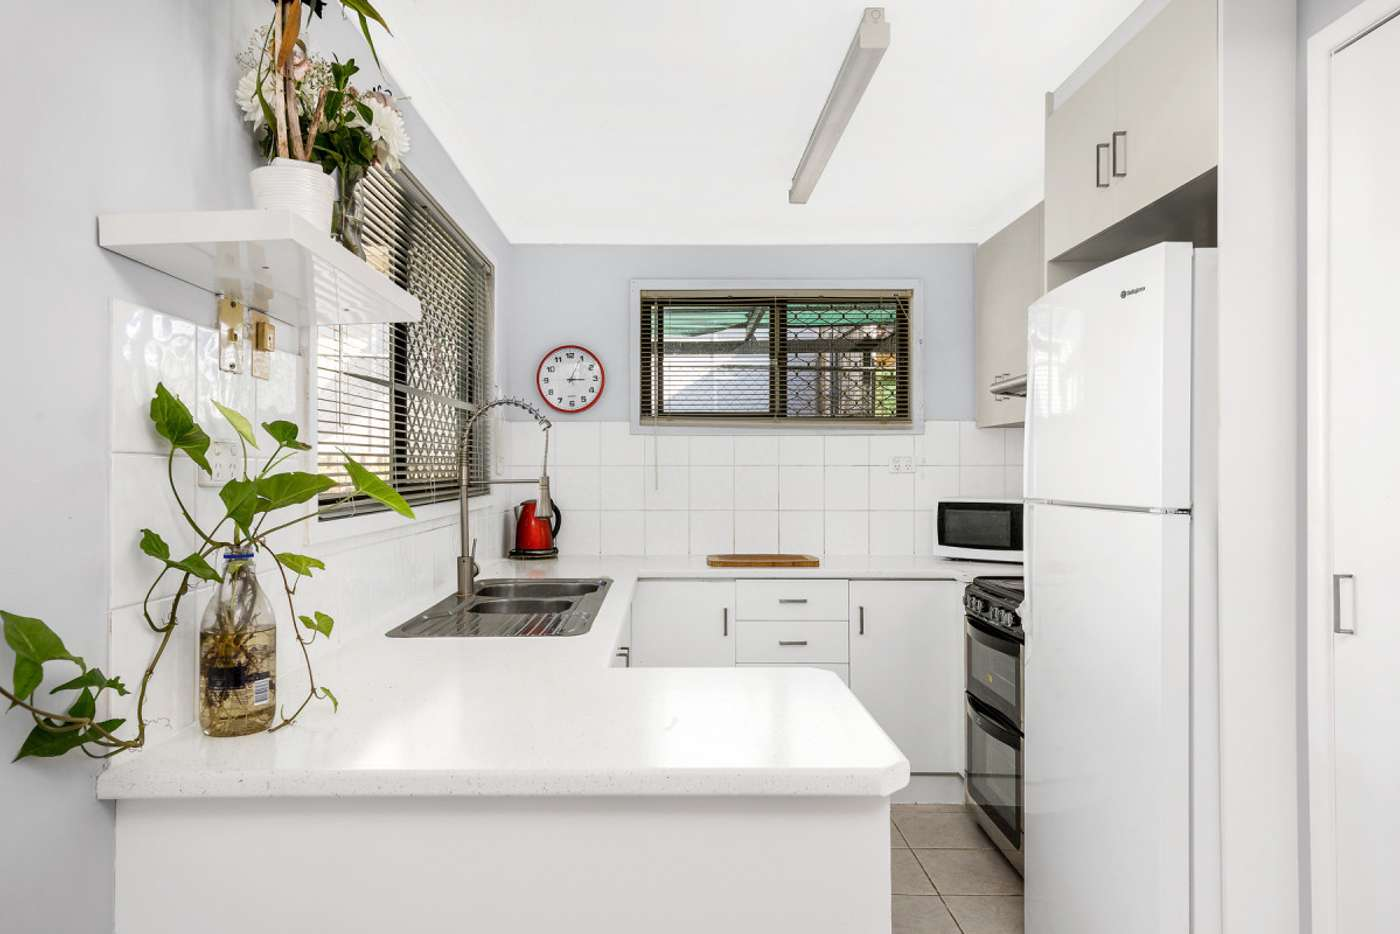 Main view of Homely house listing, 17 Glenmore Street, Kallangur QLD 4503